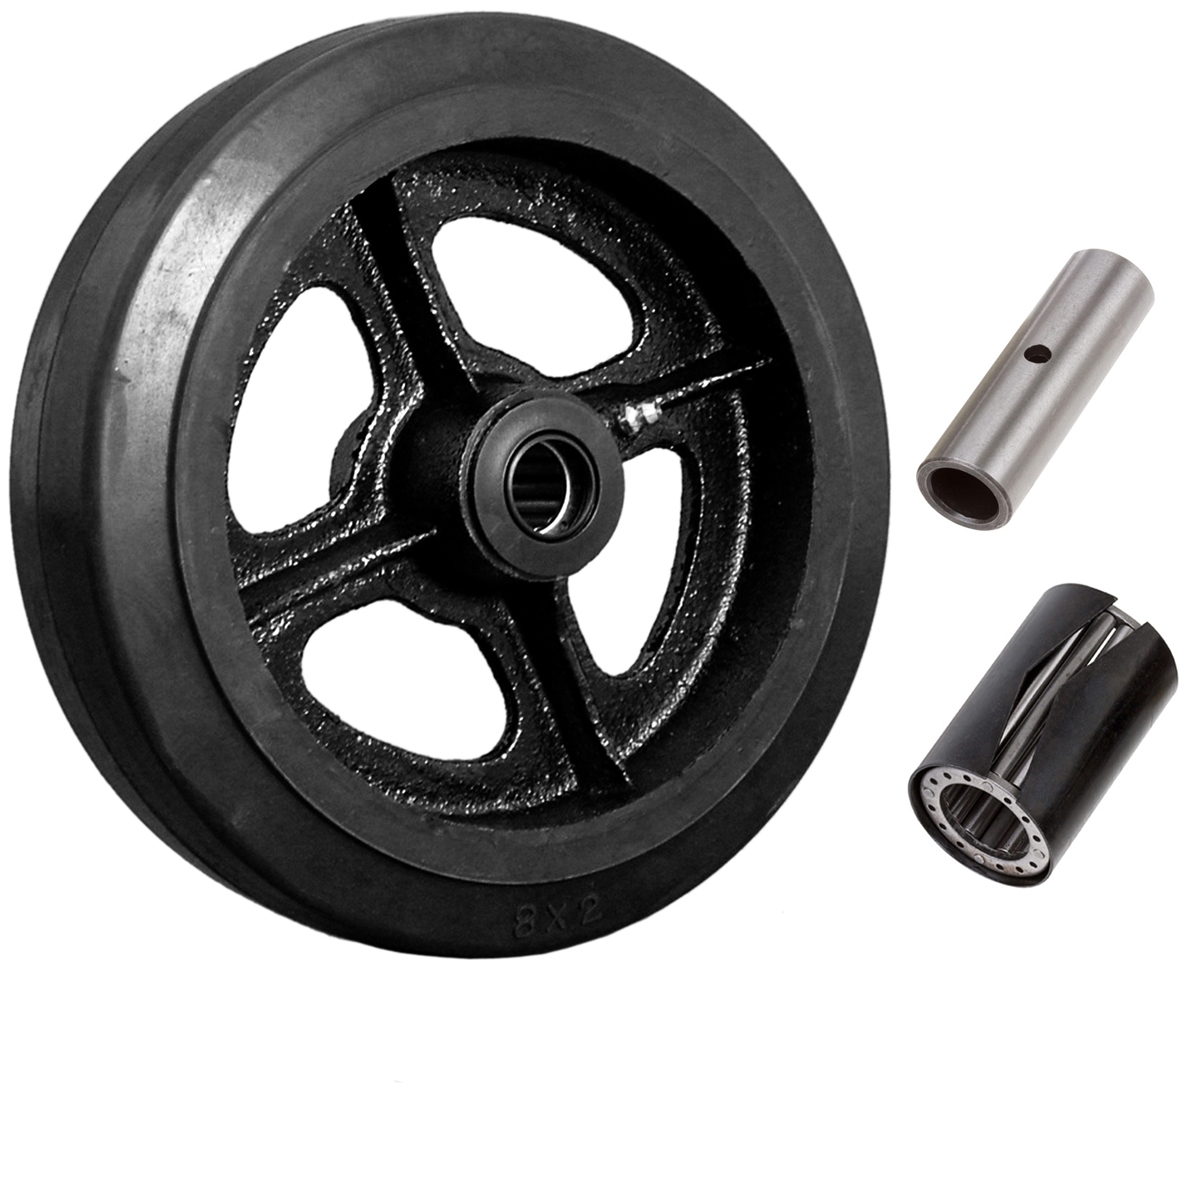 Set of 2 V-Groove 6 x 2 Iron Wheels with Roller Bearing and 1//2 ID Spanner